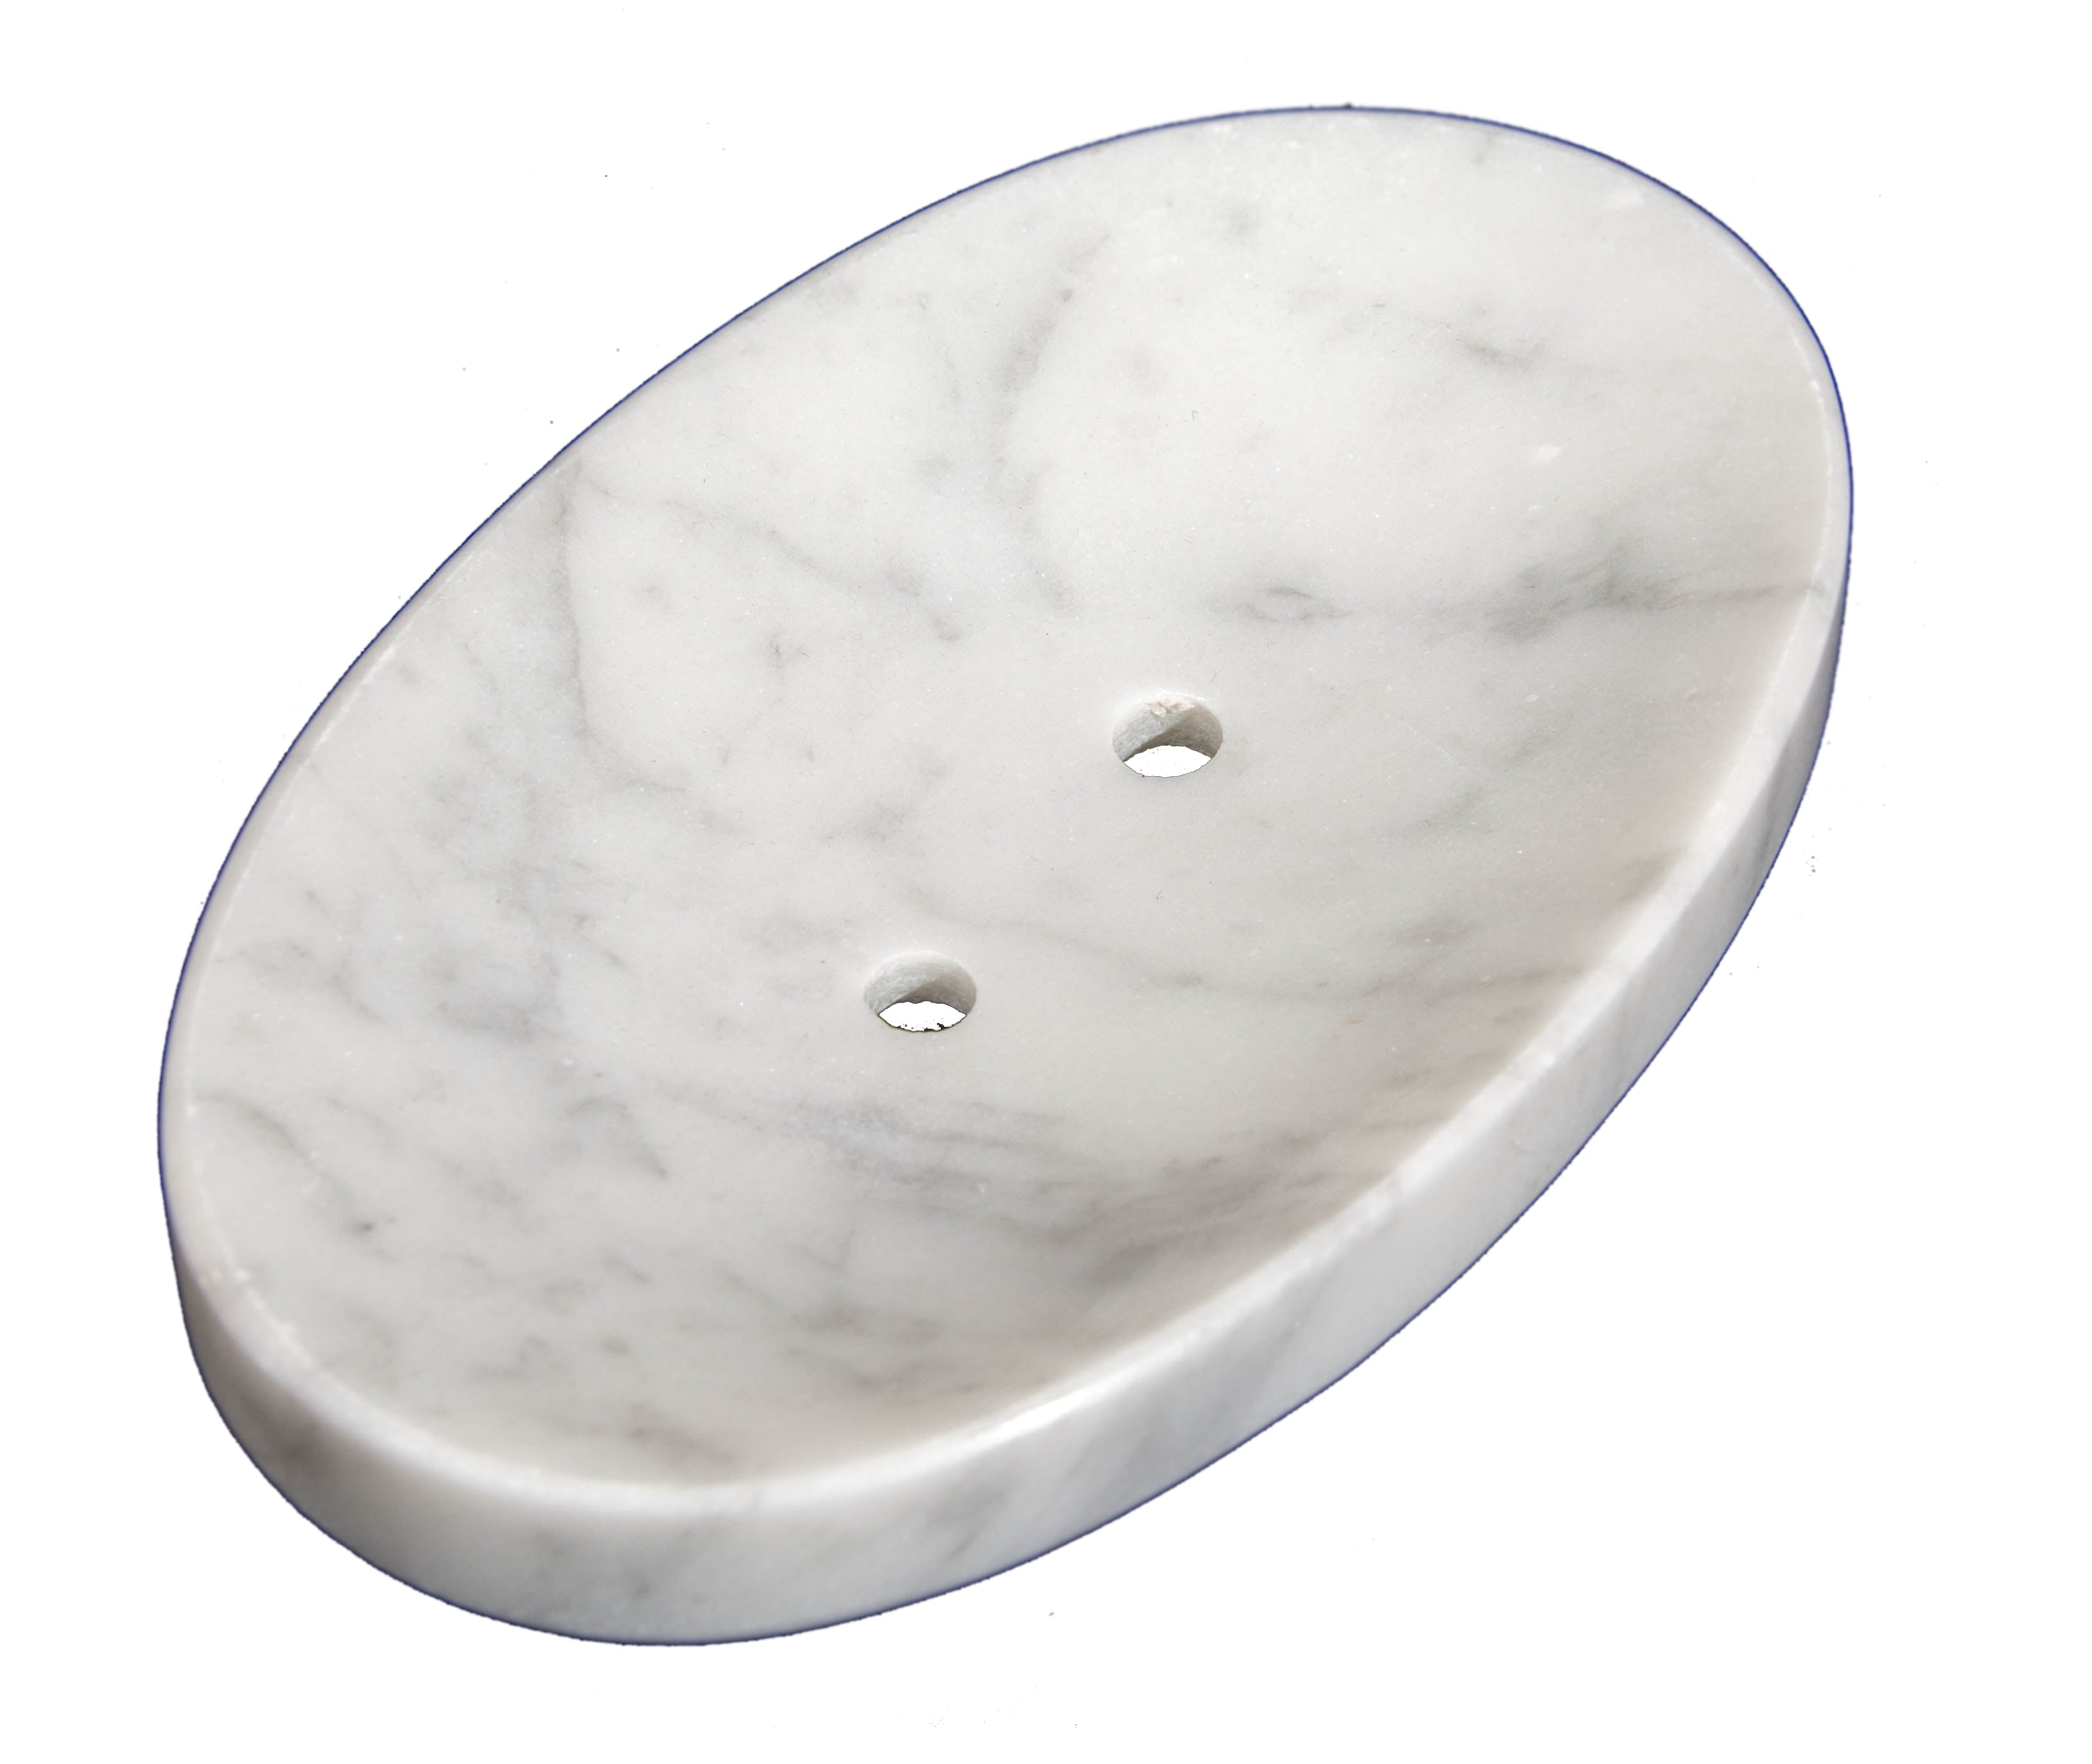 White Marble Soap Dish - Polished and Shiny Marble Dish Holder Beautifully Crafted Bathroom Accessory by CraftsOfEgypt